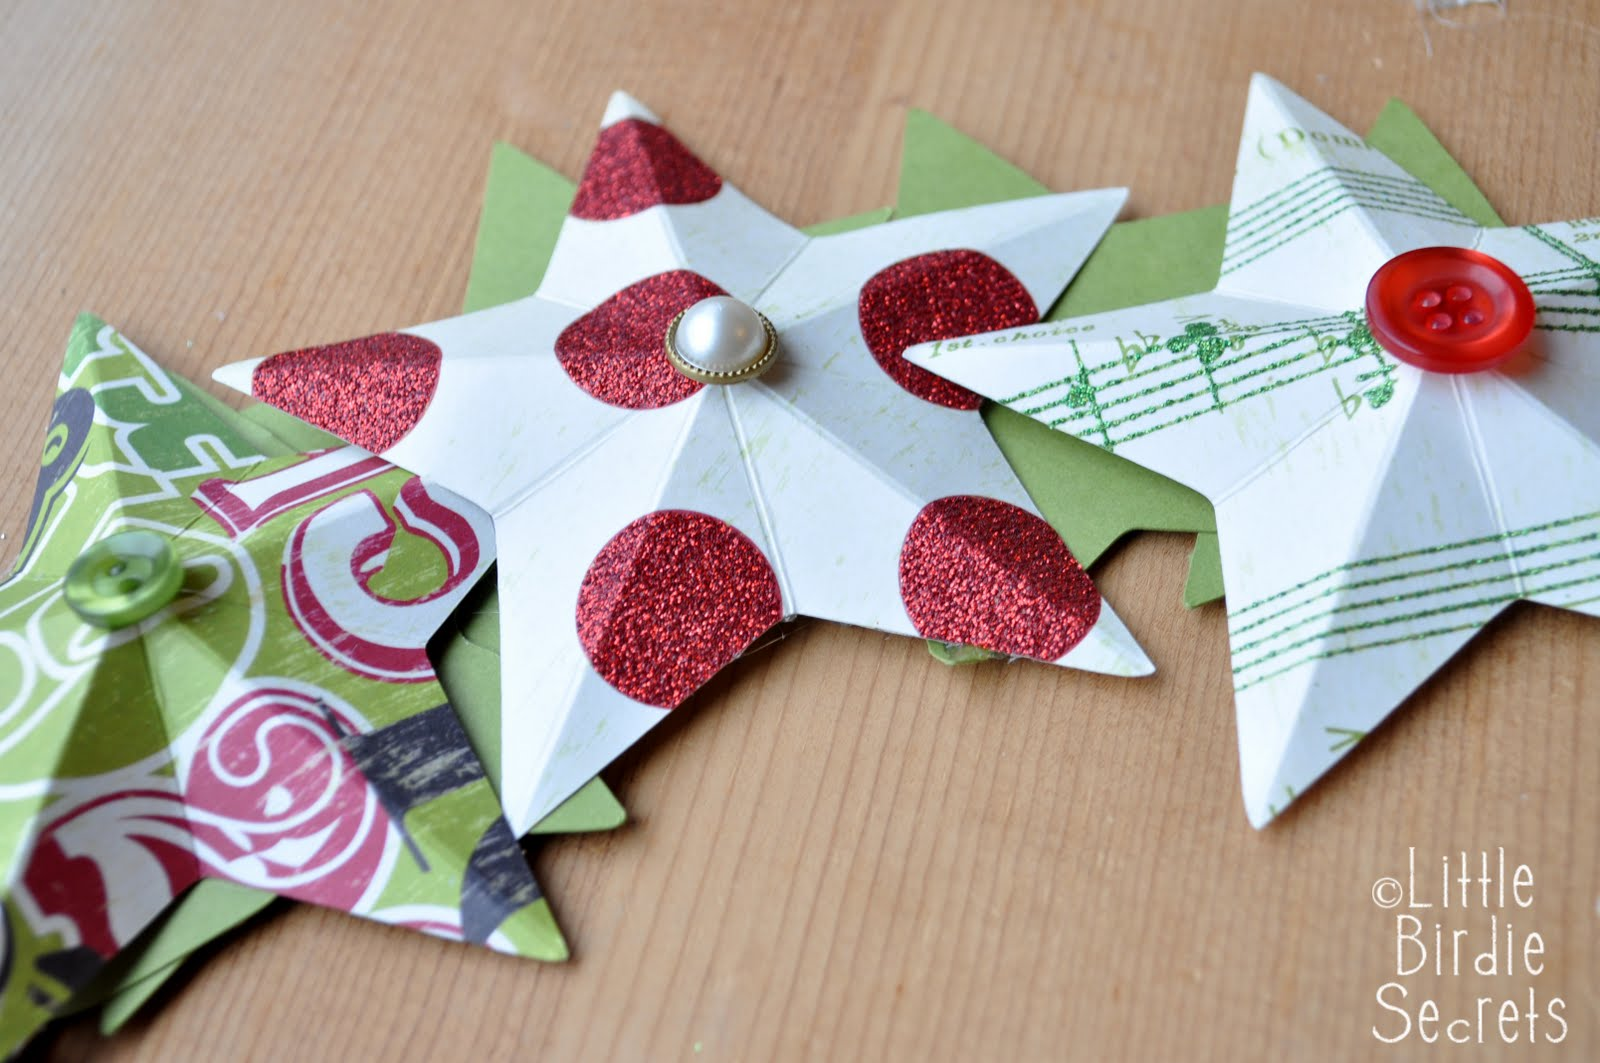 Wreath a Day #2: Mixed Media Paper Star Wreath